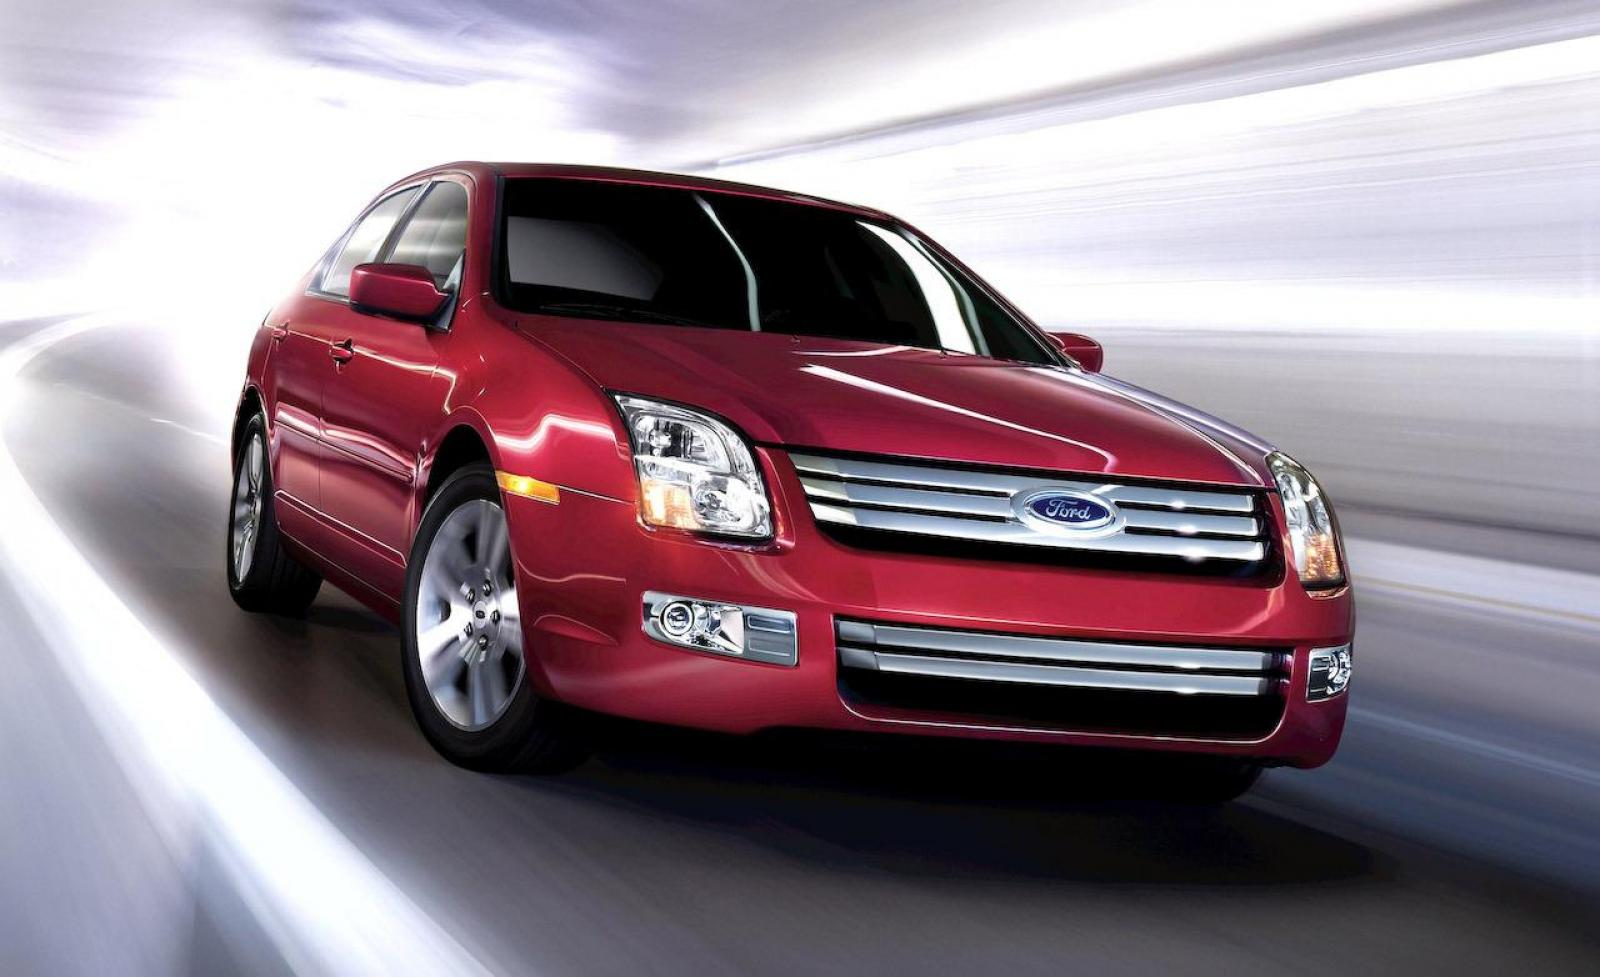 2009 ford fusion information and photos zombiedrive. Black Bedroom Furniture Sets. Home Design Ideas